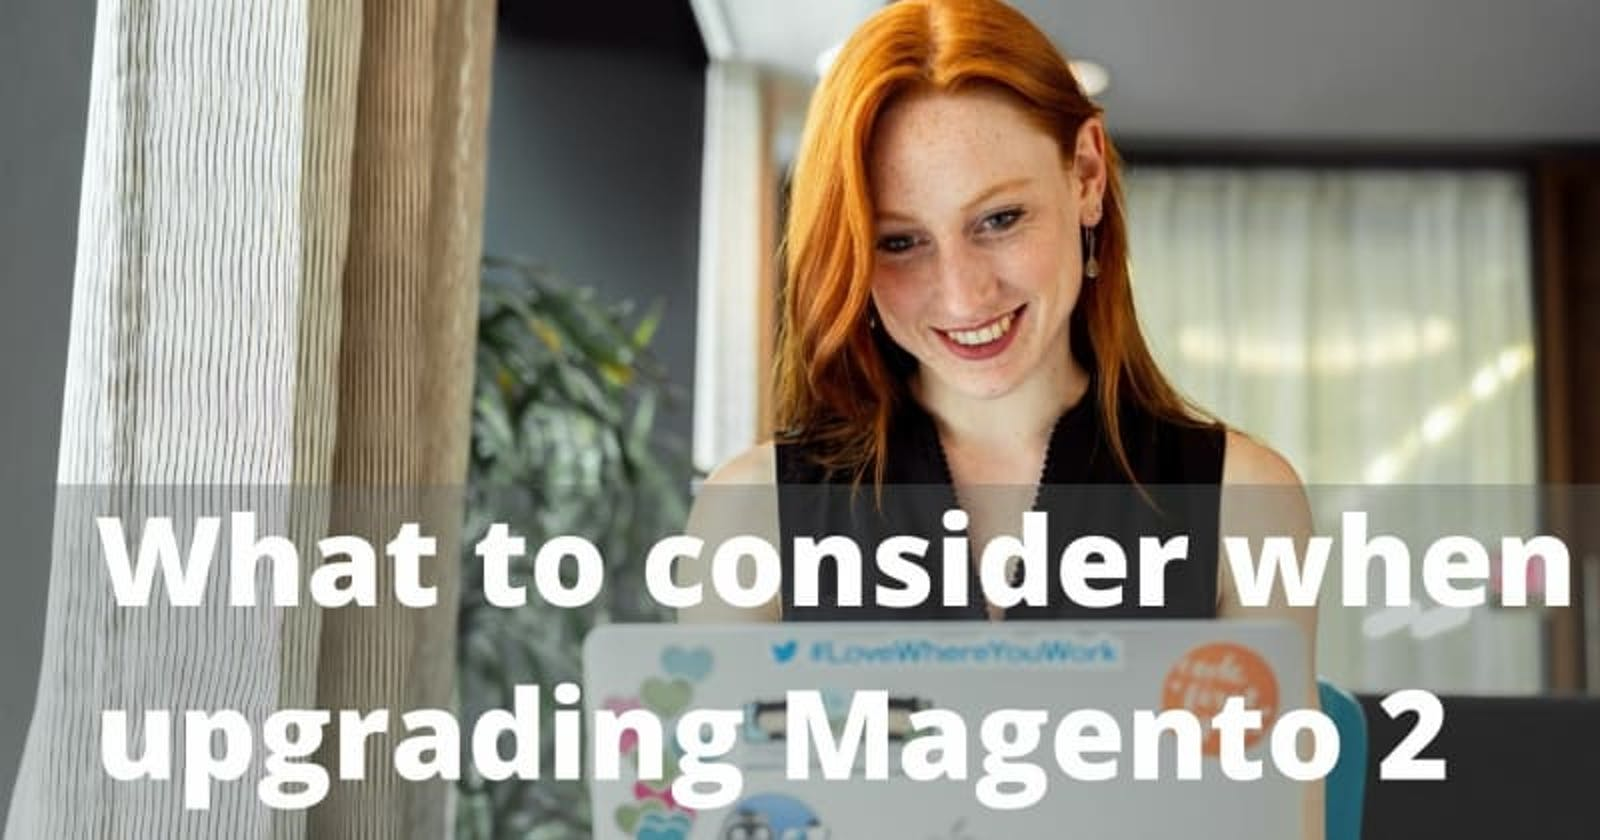 What to consider when upgrading Magento 2